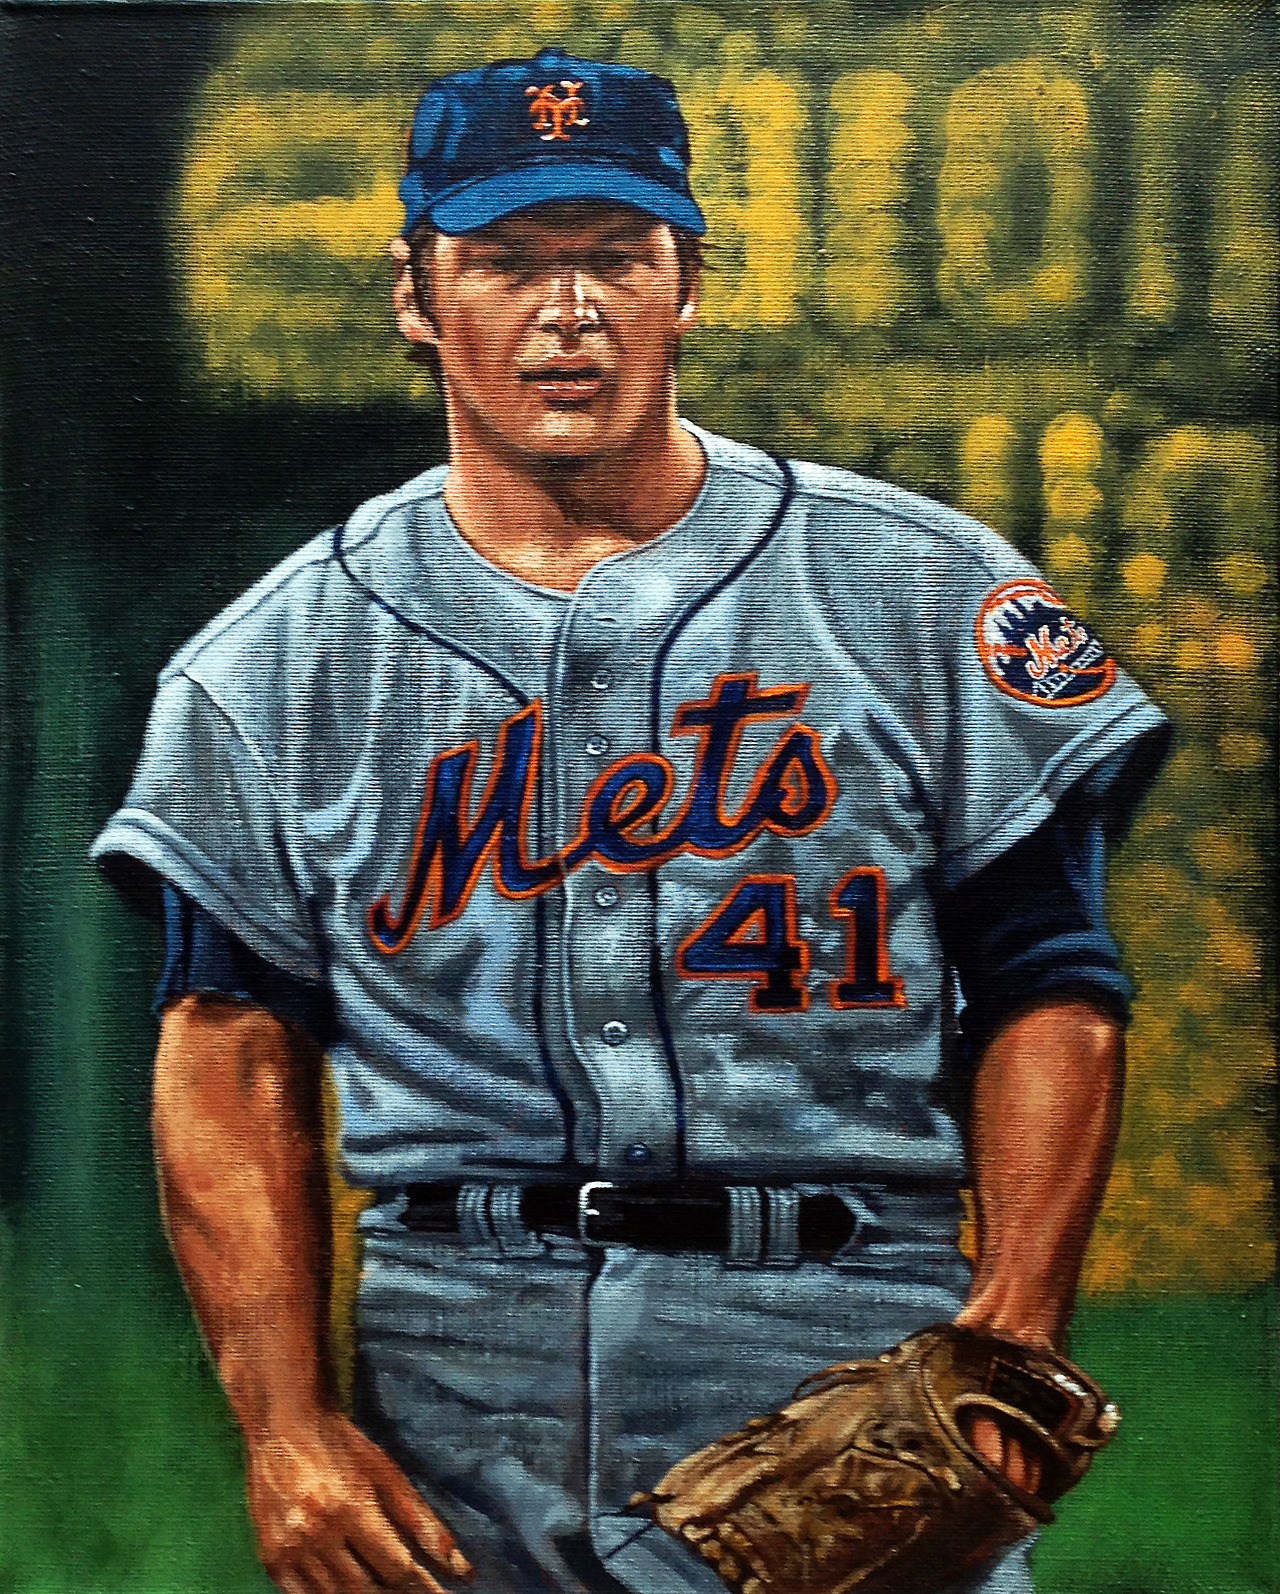 """Tom Seaver"" by artist Paul Lempa"